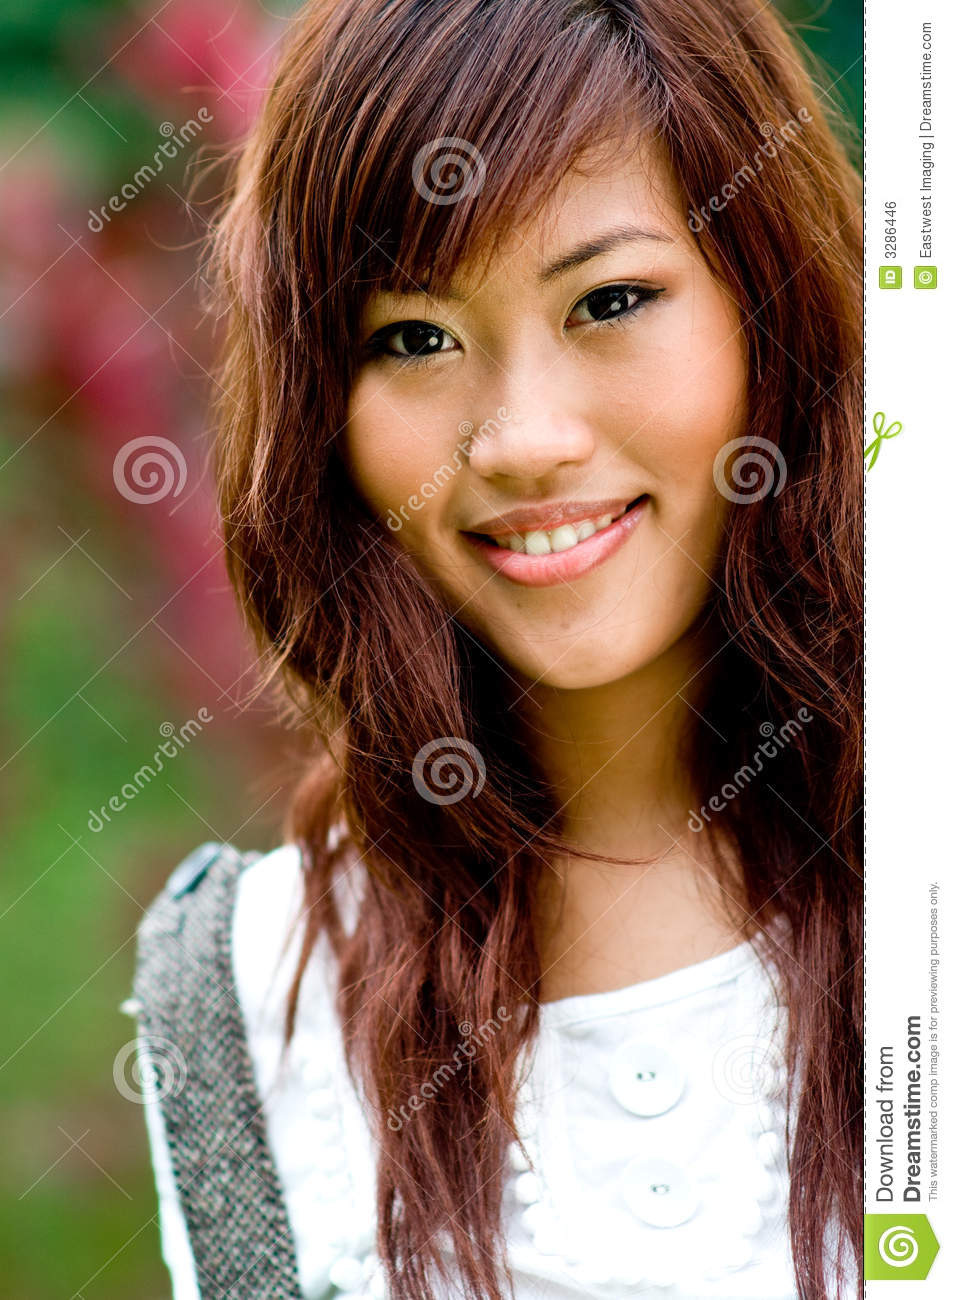 newfoundland asian personals Newfoundland's best 100% free asian online dating site meet cute asian singles in pennsylvania with our free newfoundland asian dating service loads of single asian men and women are looking for their match on the internet's best website for meeting asians in newfoundland.